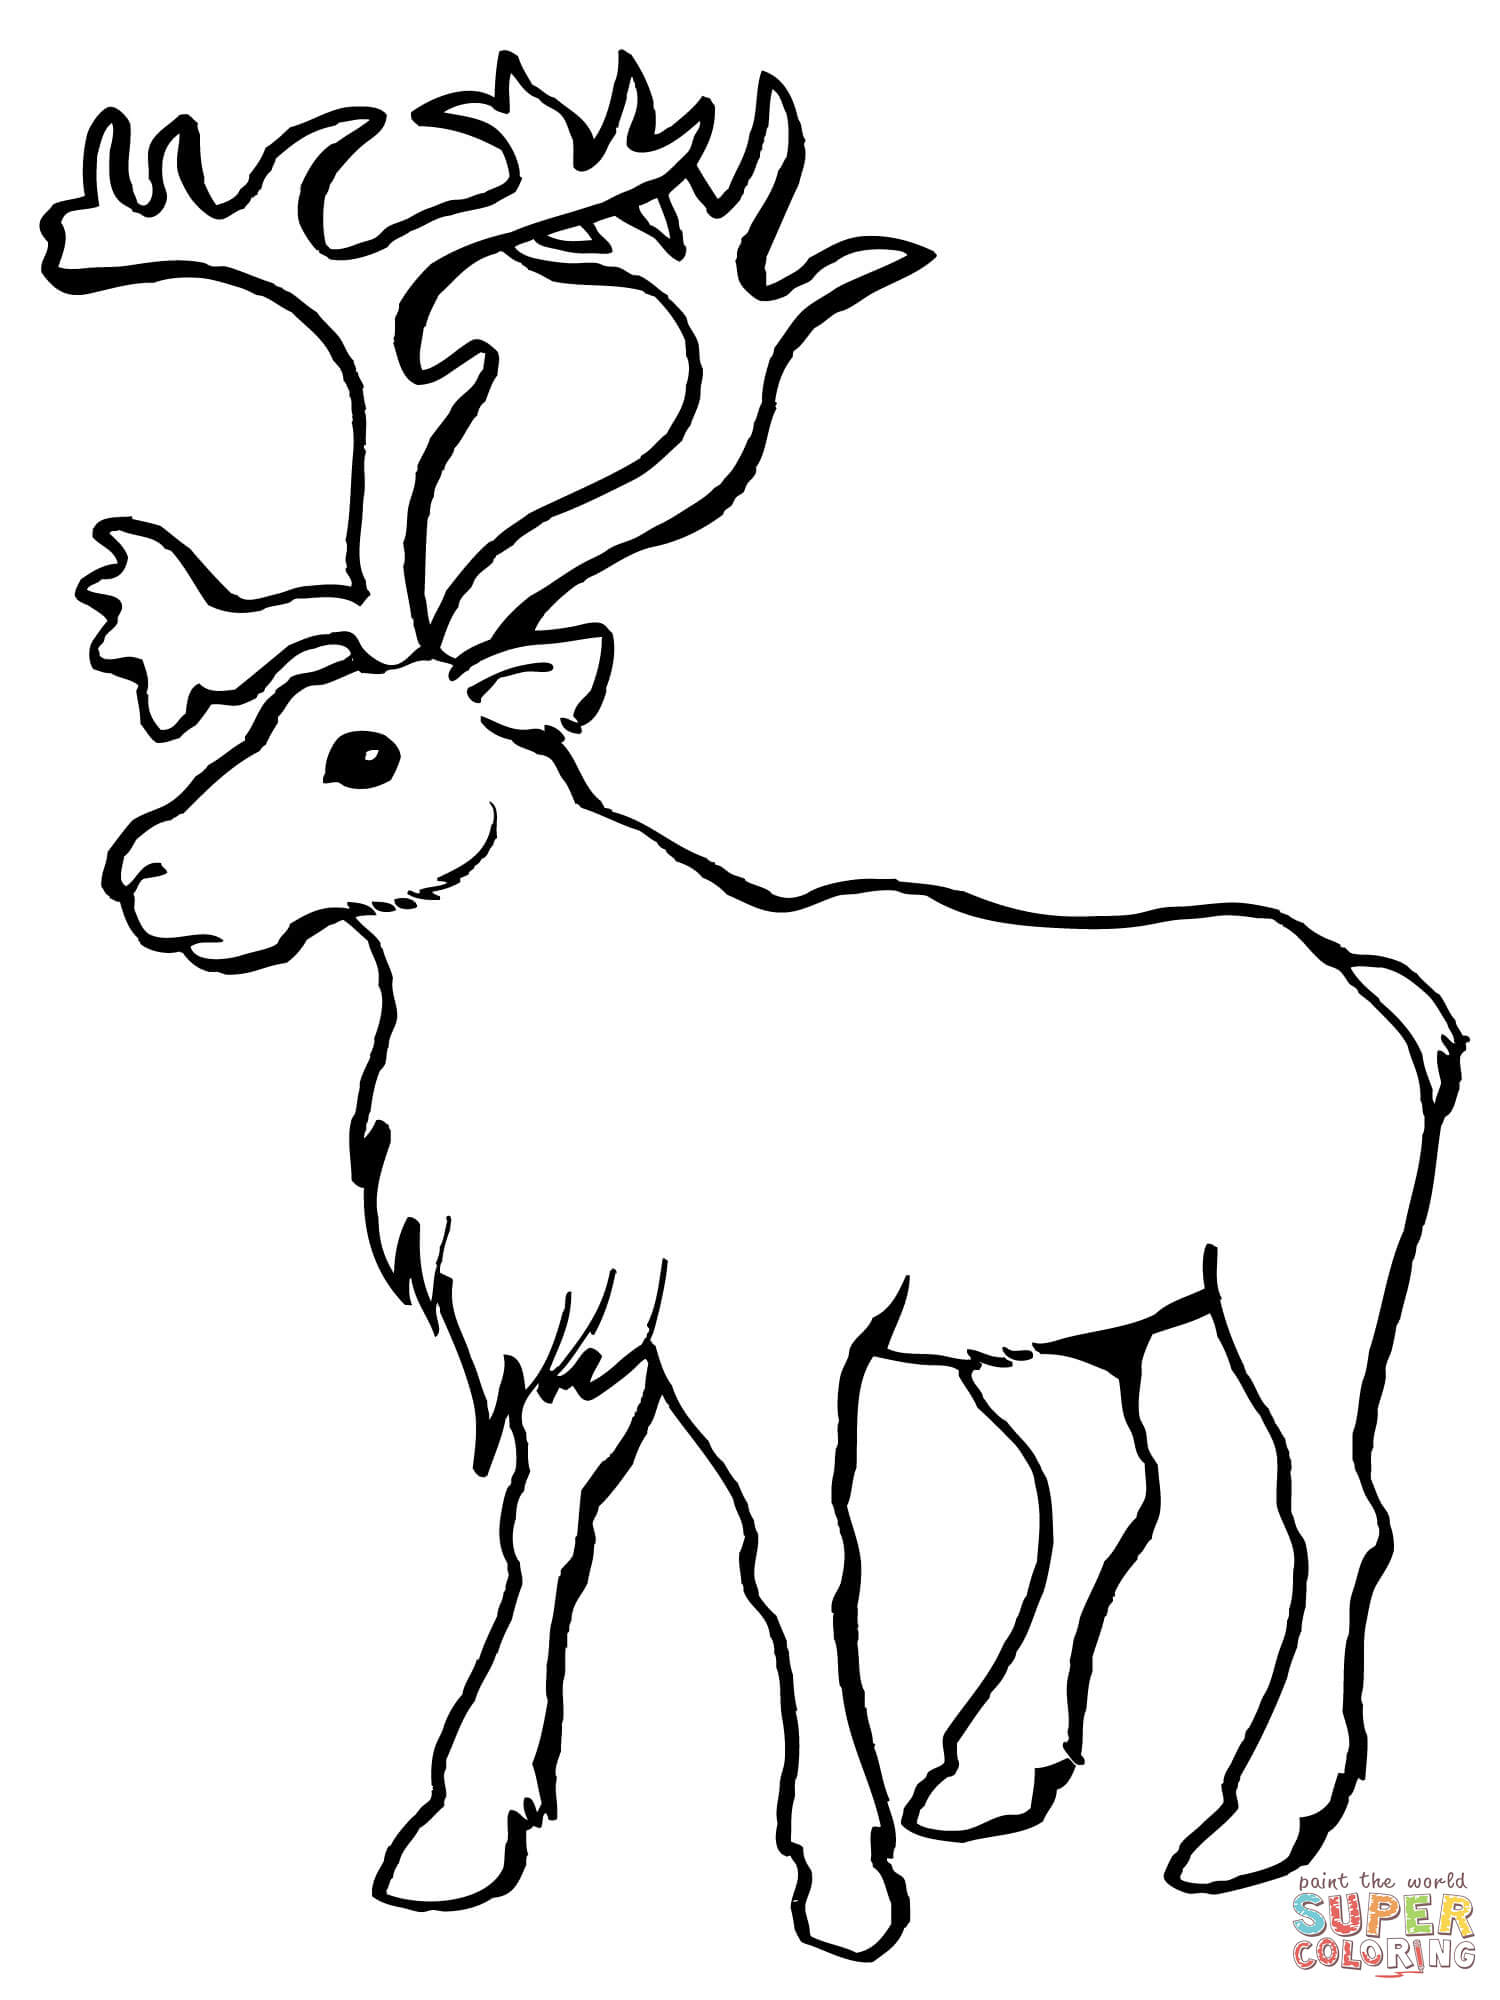 Drawn reindeer caribou Coloring Coloring Caribou the Reindeer